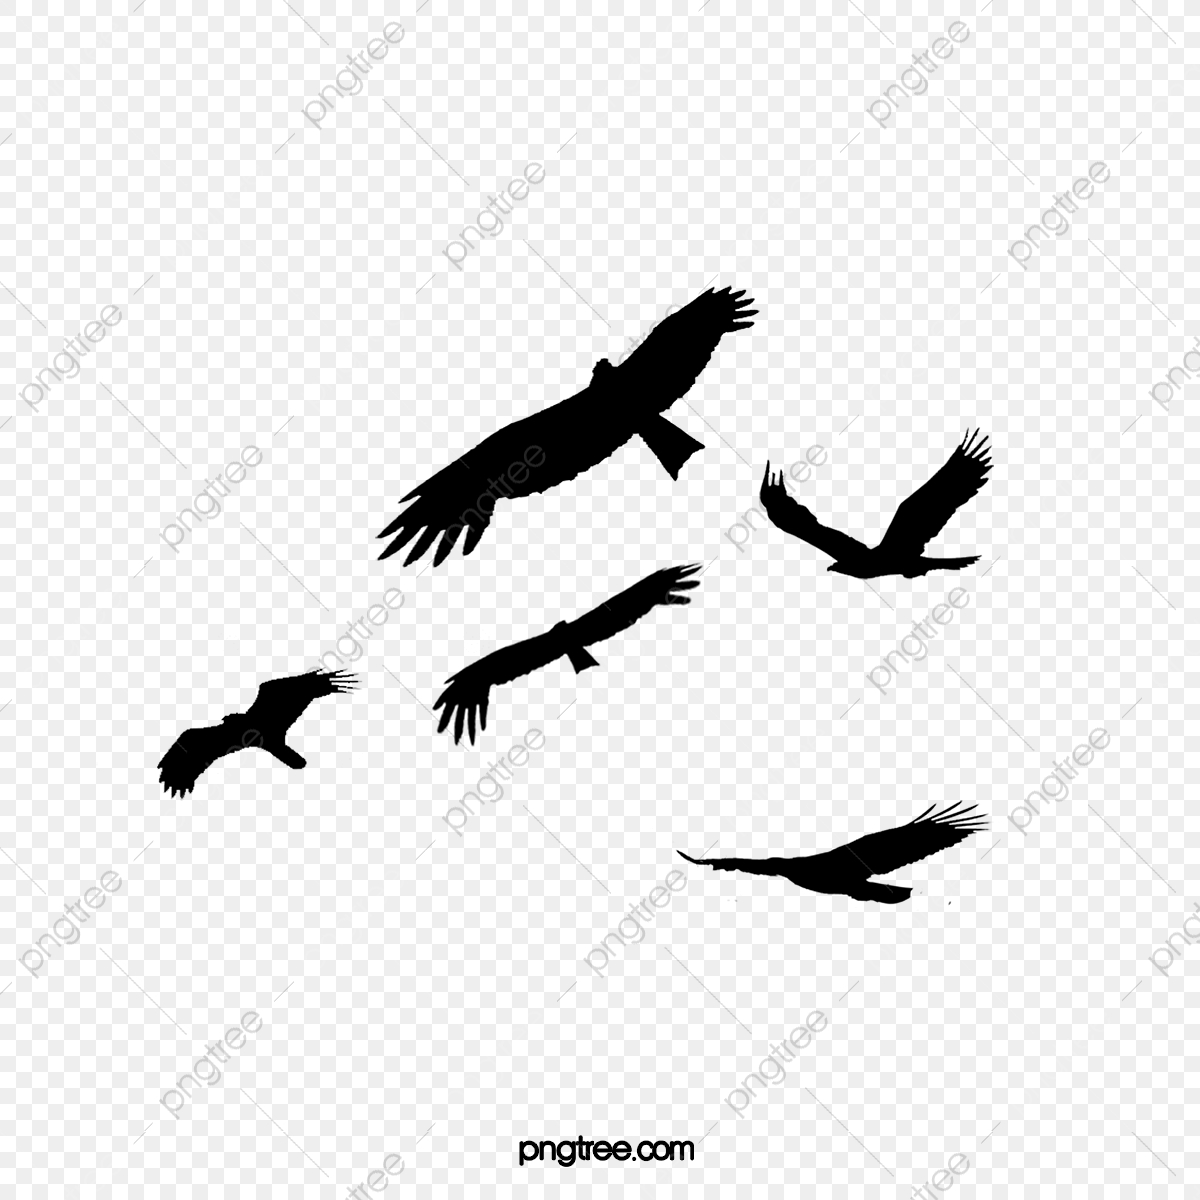 Bird diving clipart graphic stock Flying Bird Silhouette, Fly, Bird, Dayan PNG Transparent Clipart ... graphic stock